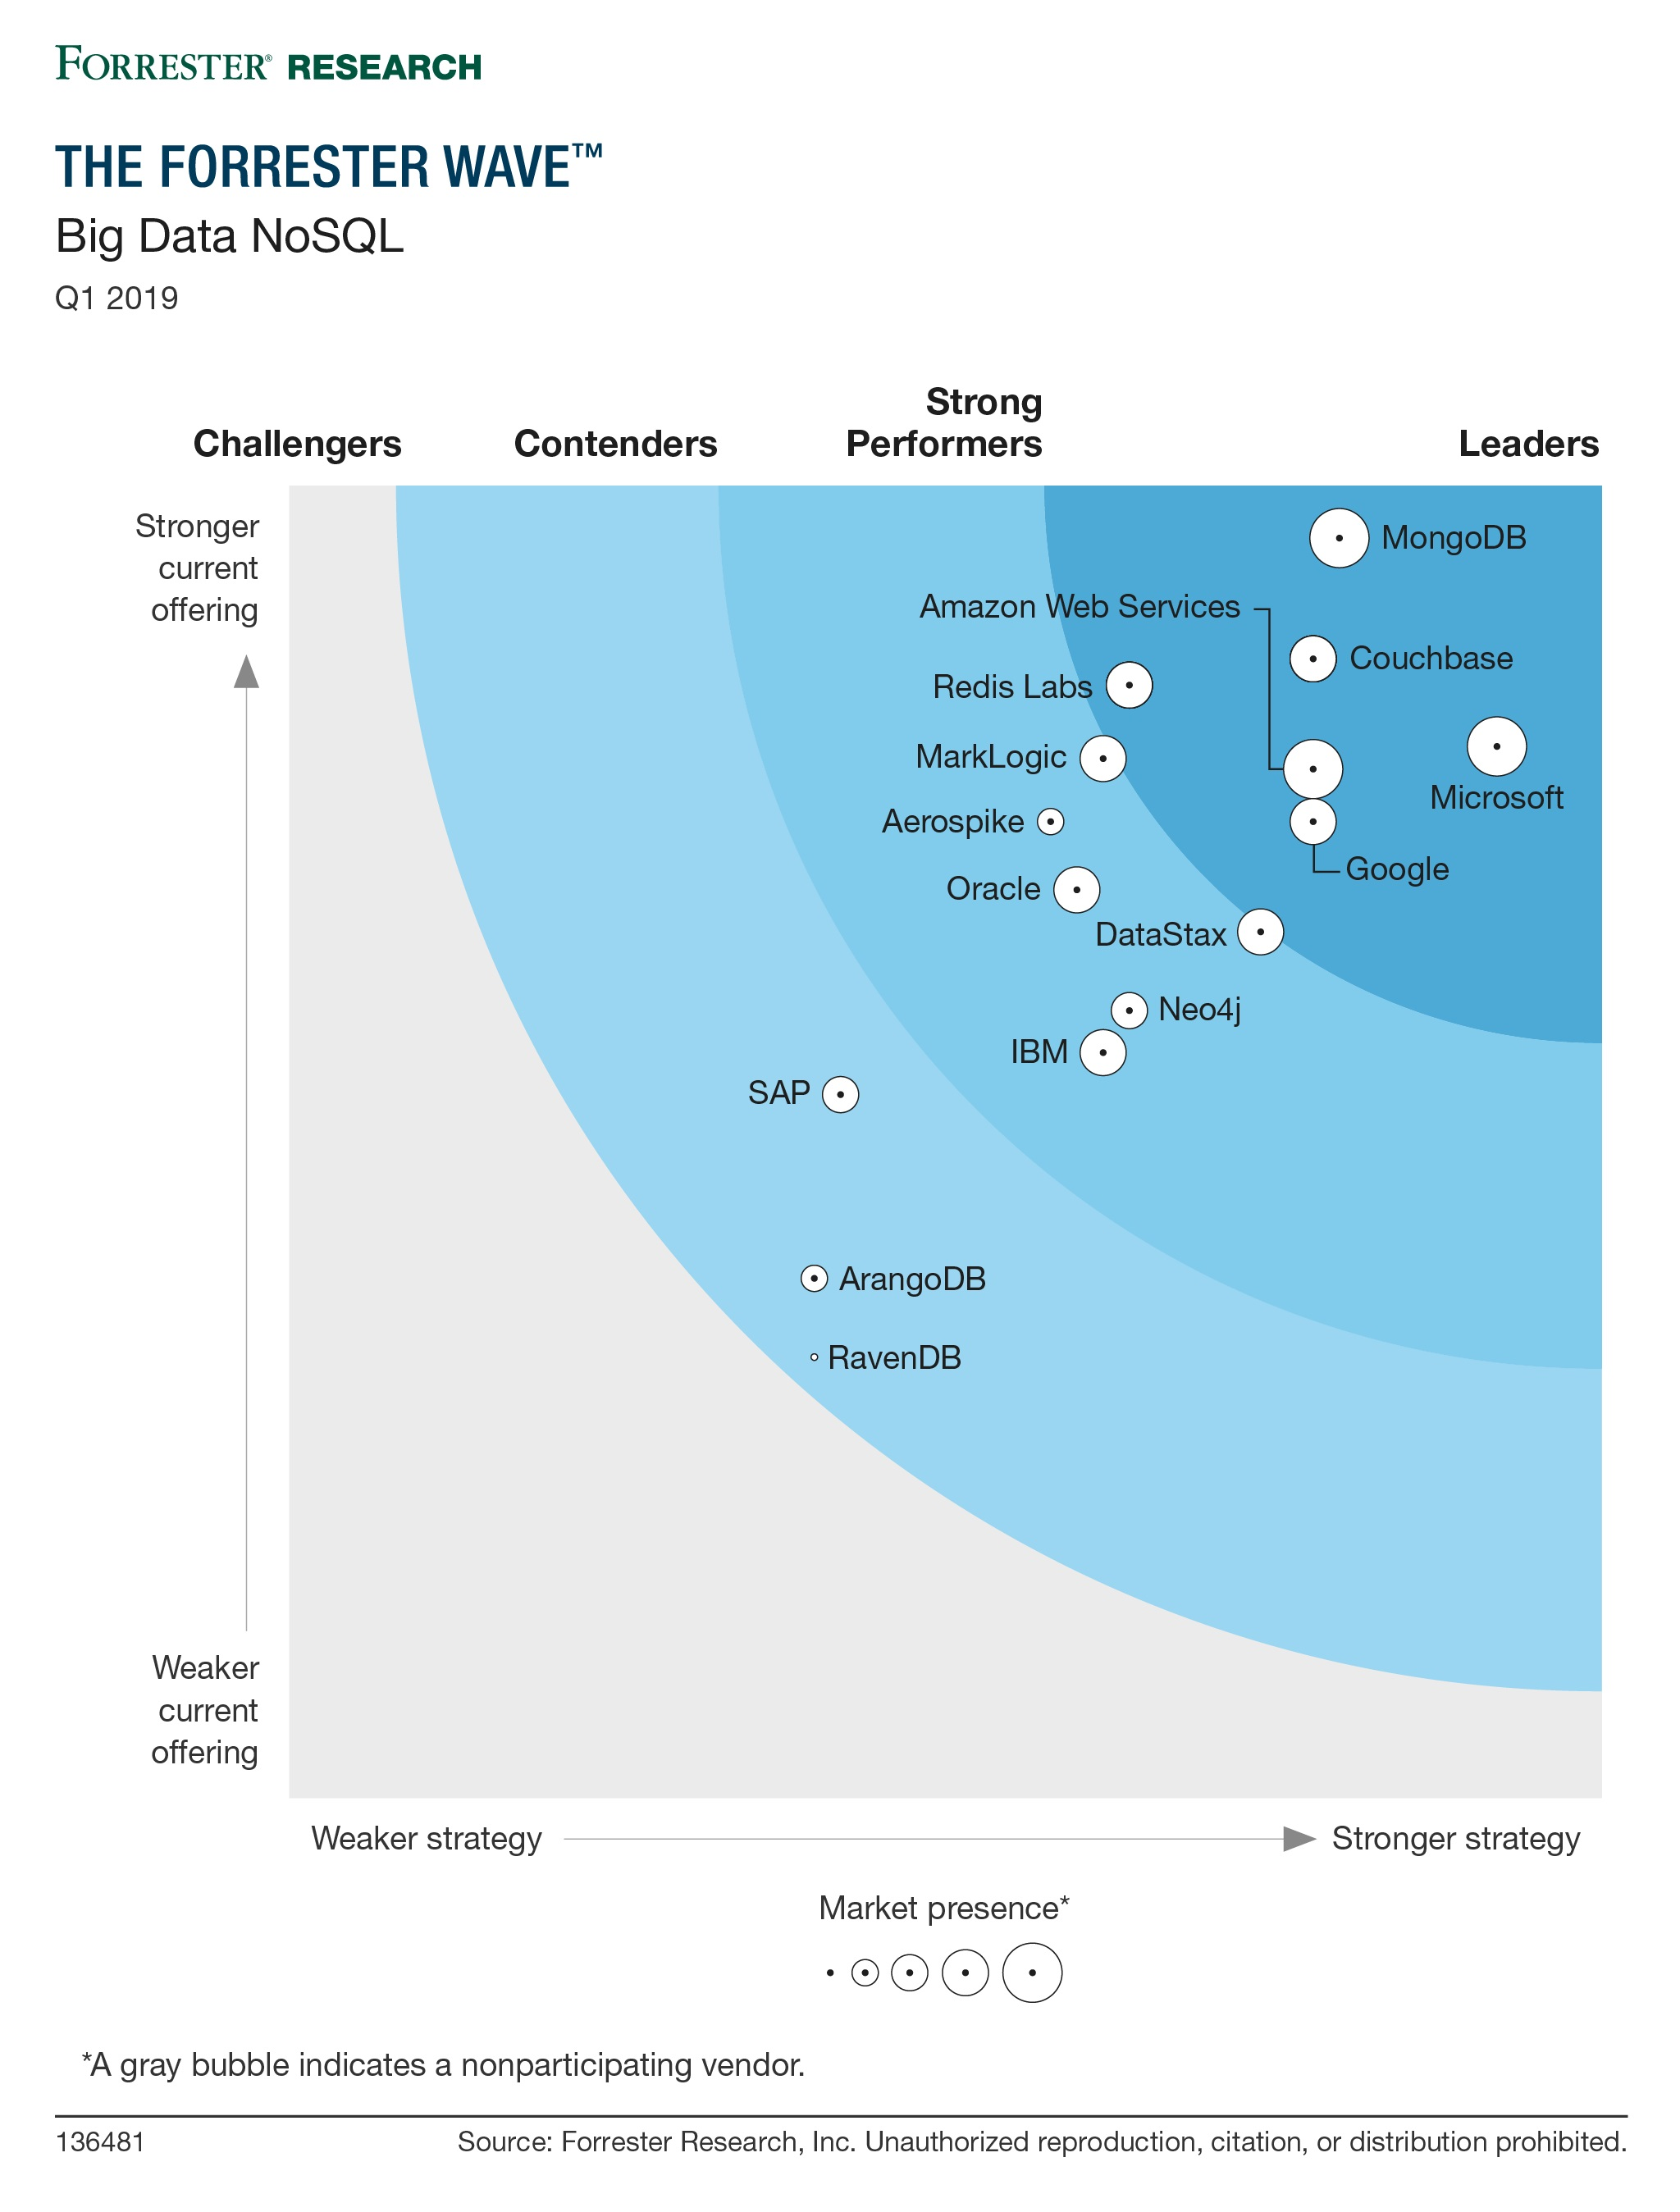 The Forrester Wave ™: Big Data NoSQL, Q1 2019